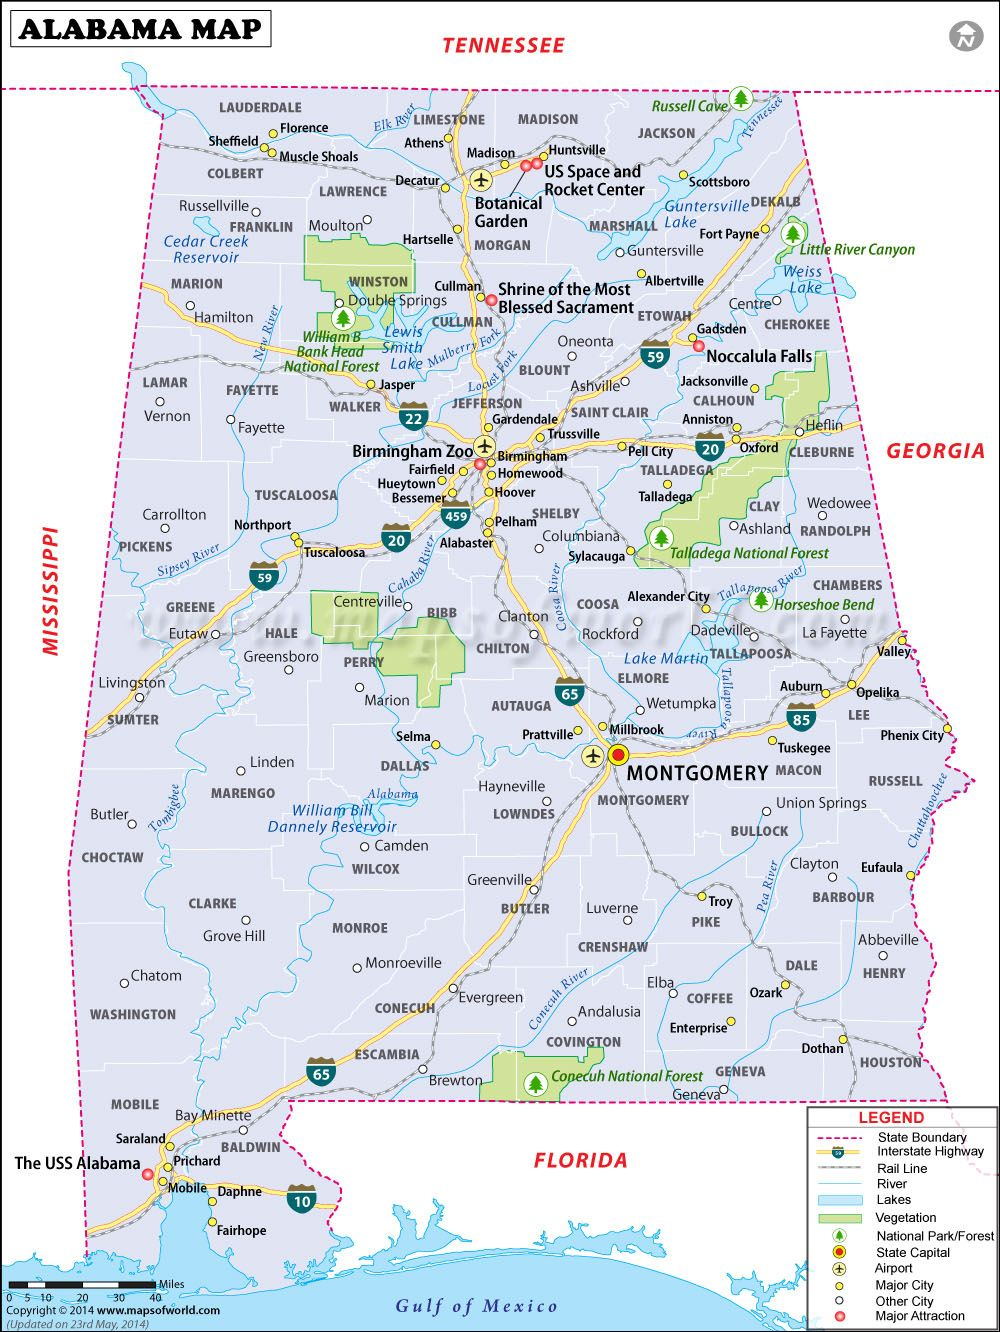 Alabama Cities Map Alabama Map for free download. Printable map of Alabama, known as